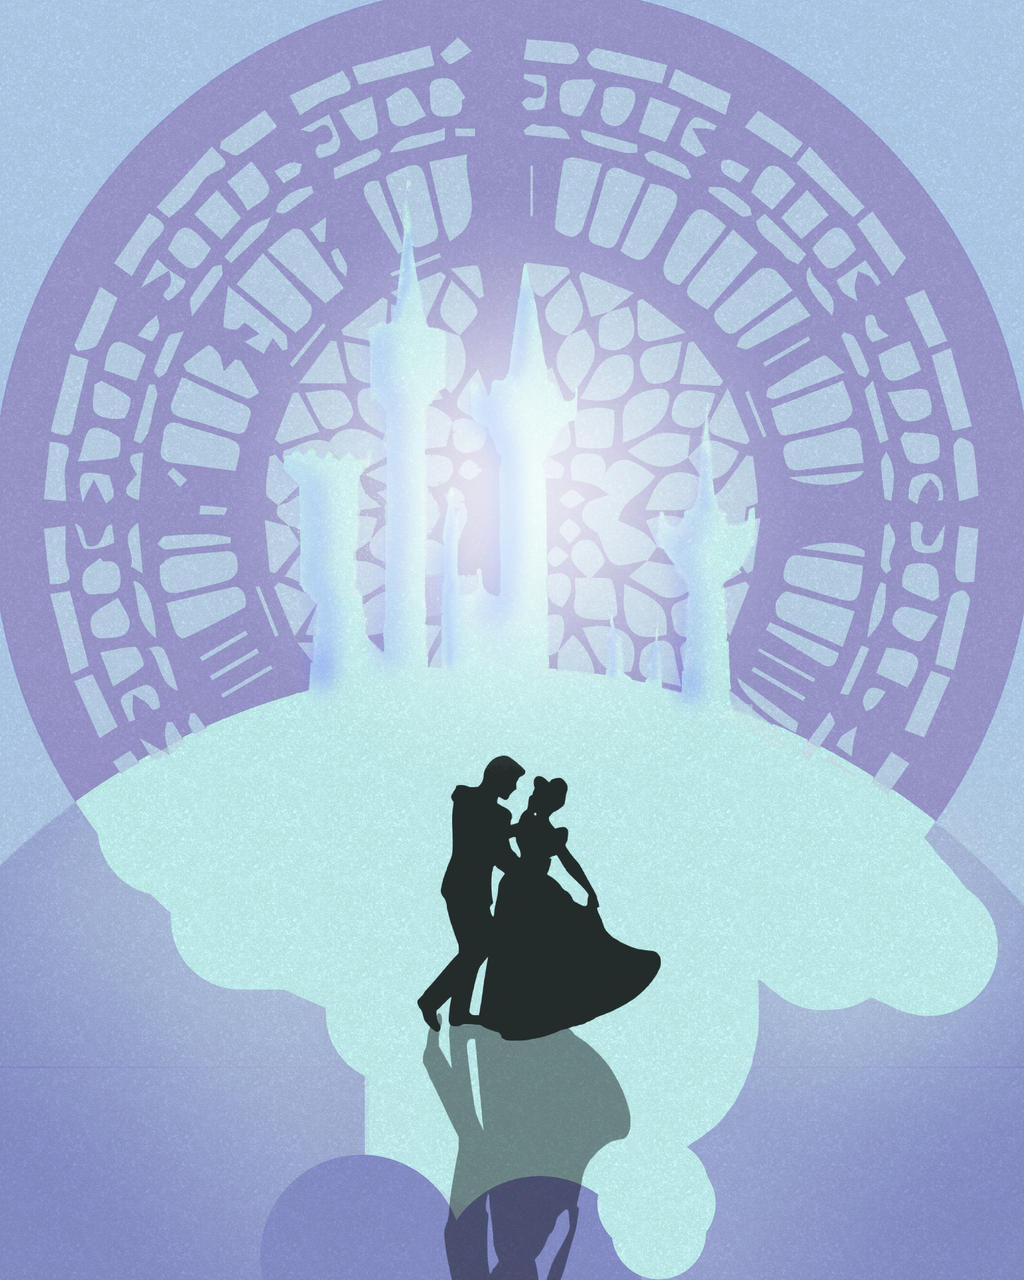 critique love and cinderella Review: disney's live-action cinderella rekindles old the black cat is her chauffeur it's love at first sight for the prince they dance the night away to the strains of a the latest version proves that third time's the charm, with a cinderella that is not revisionist but plain.